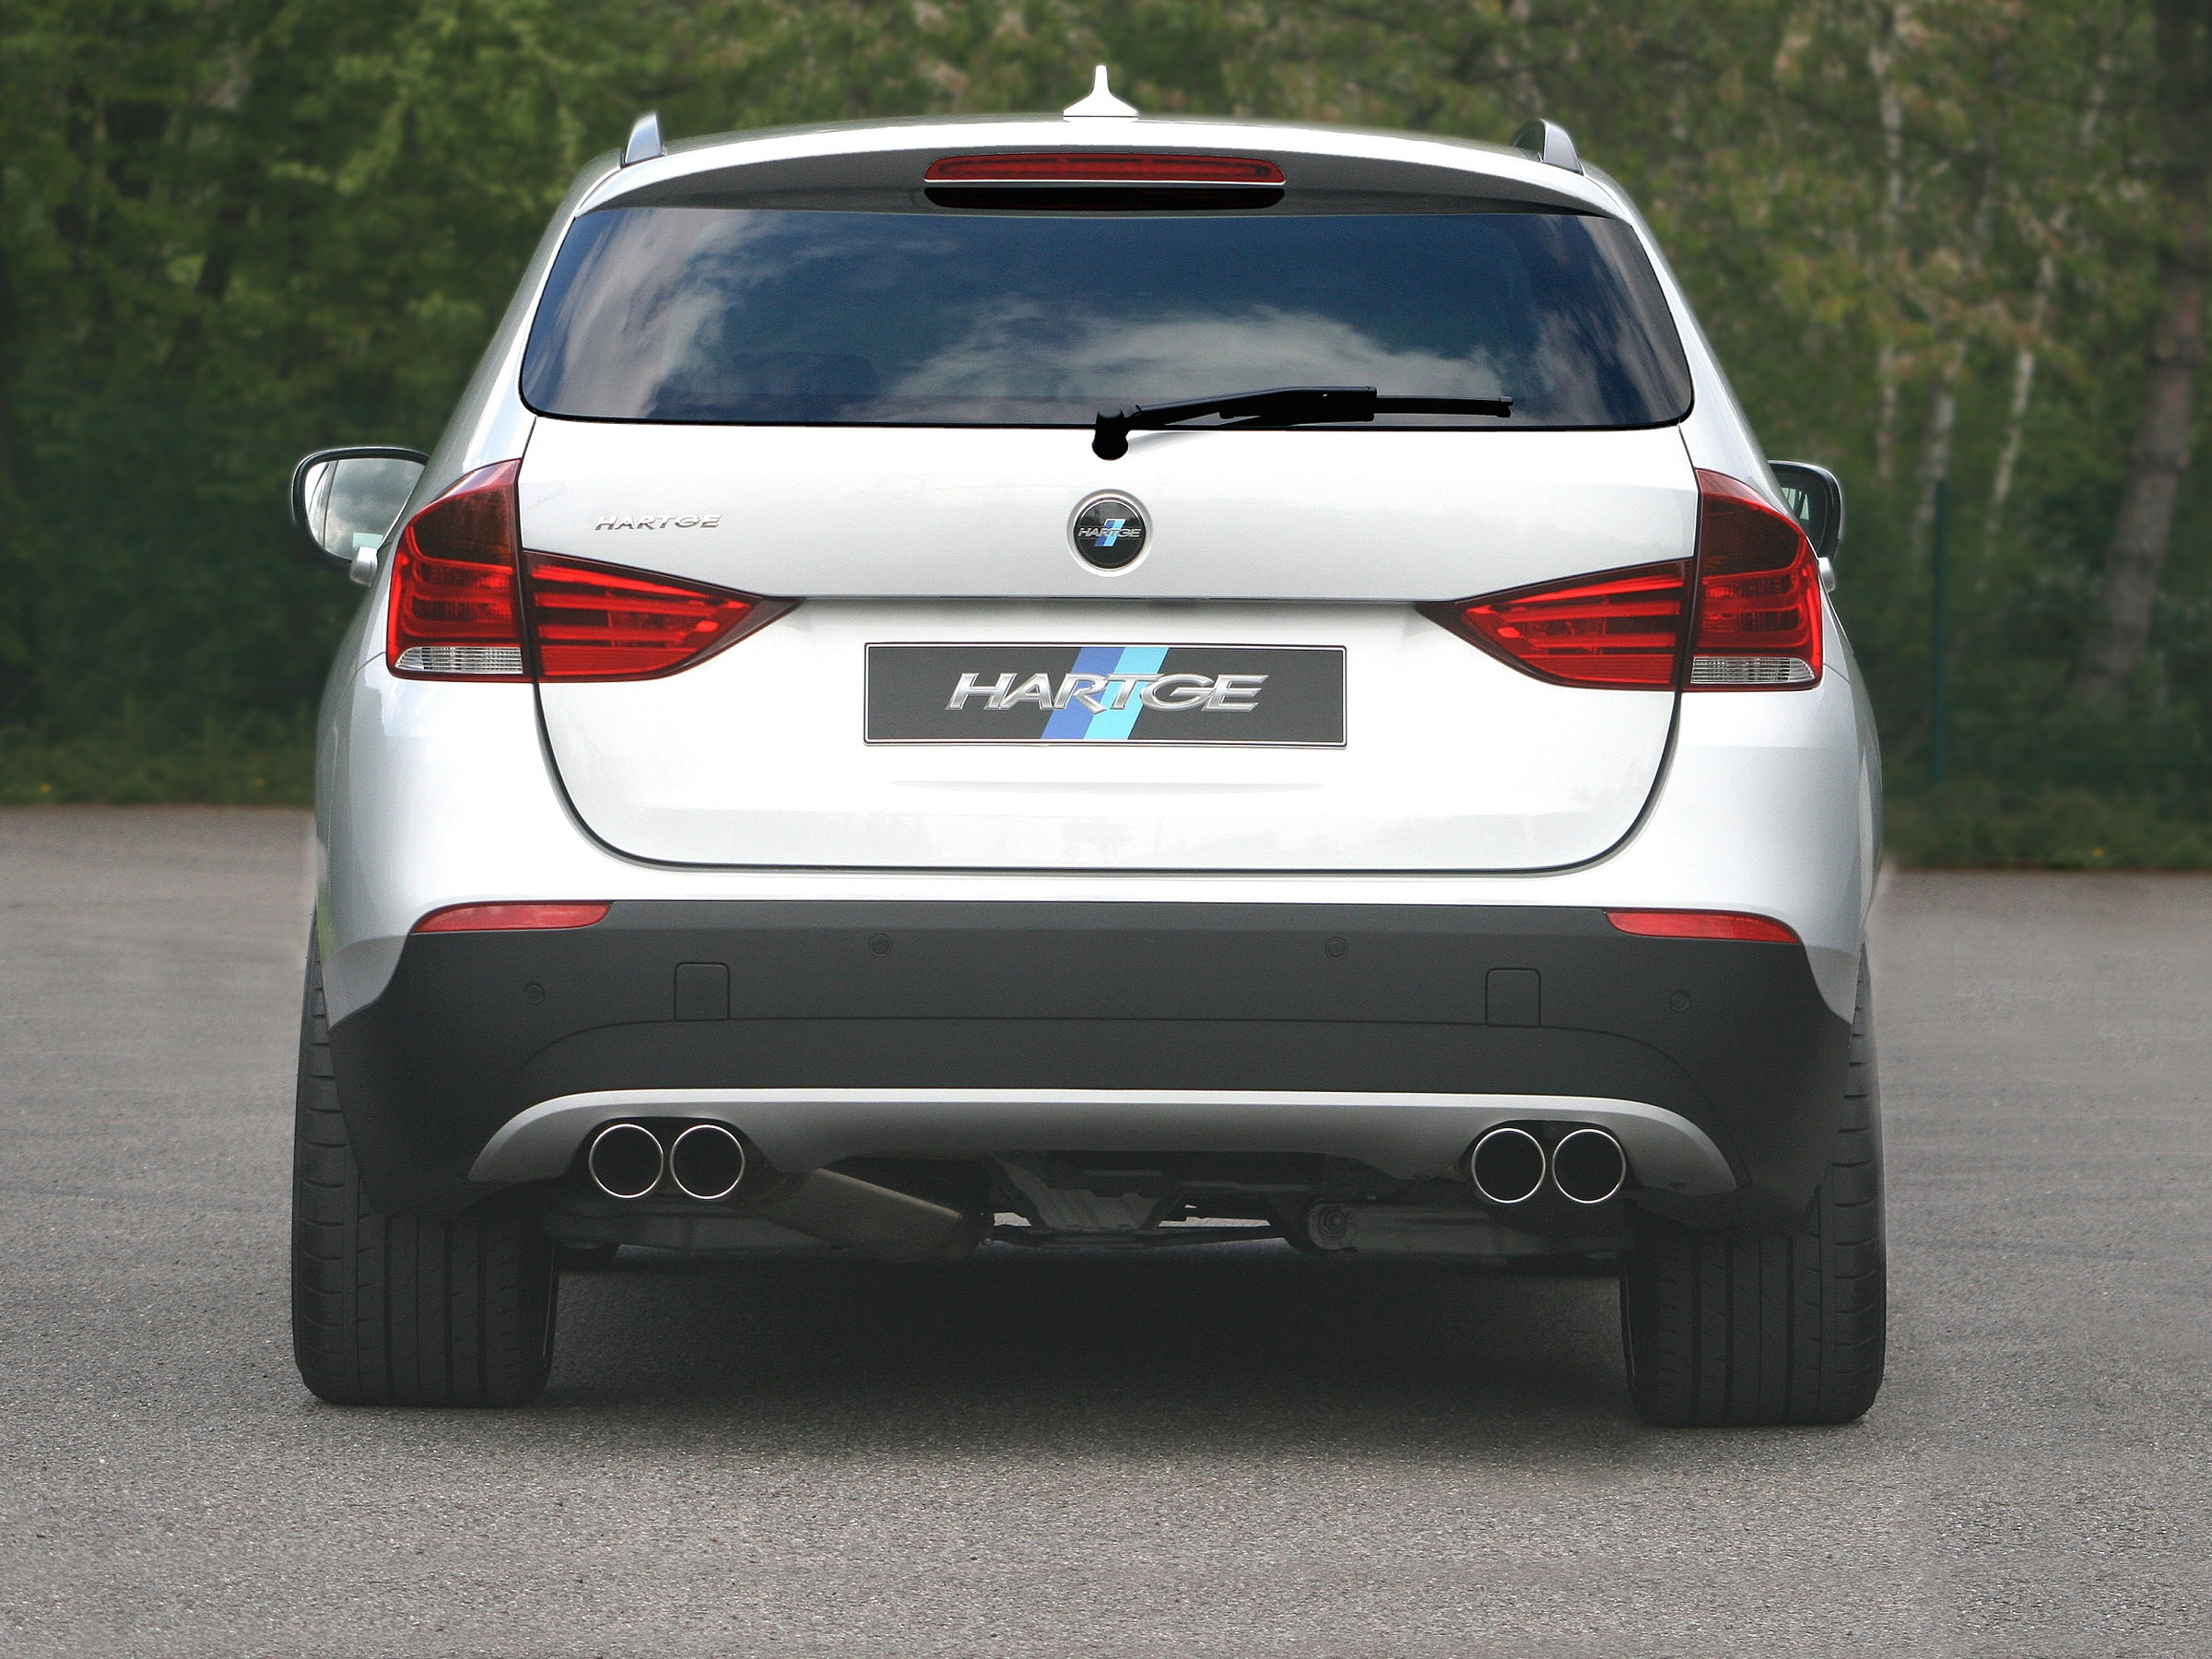 Hartge Bmw X1 Picture 41701